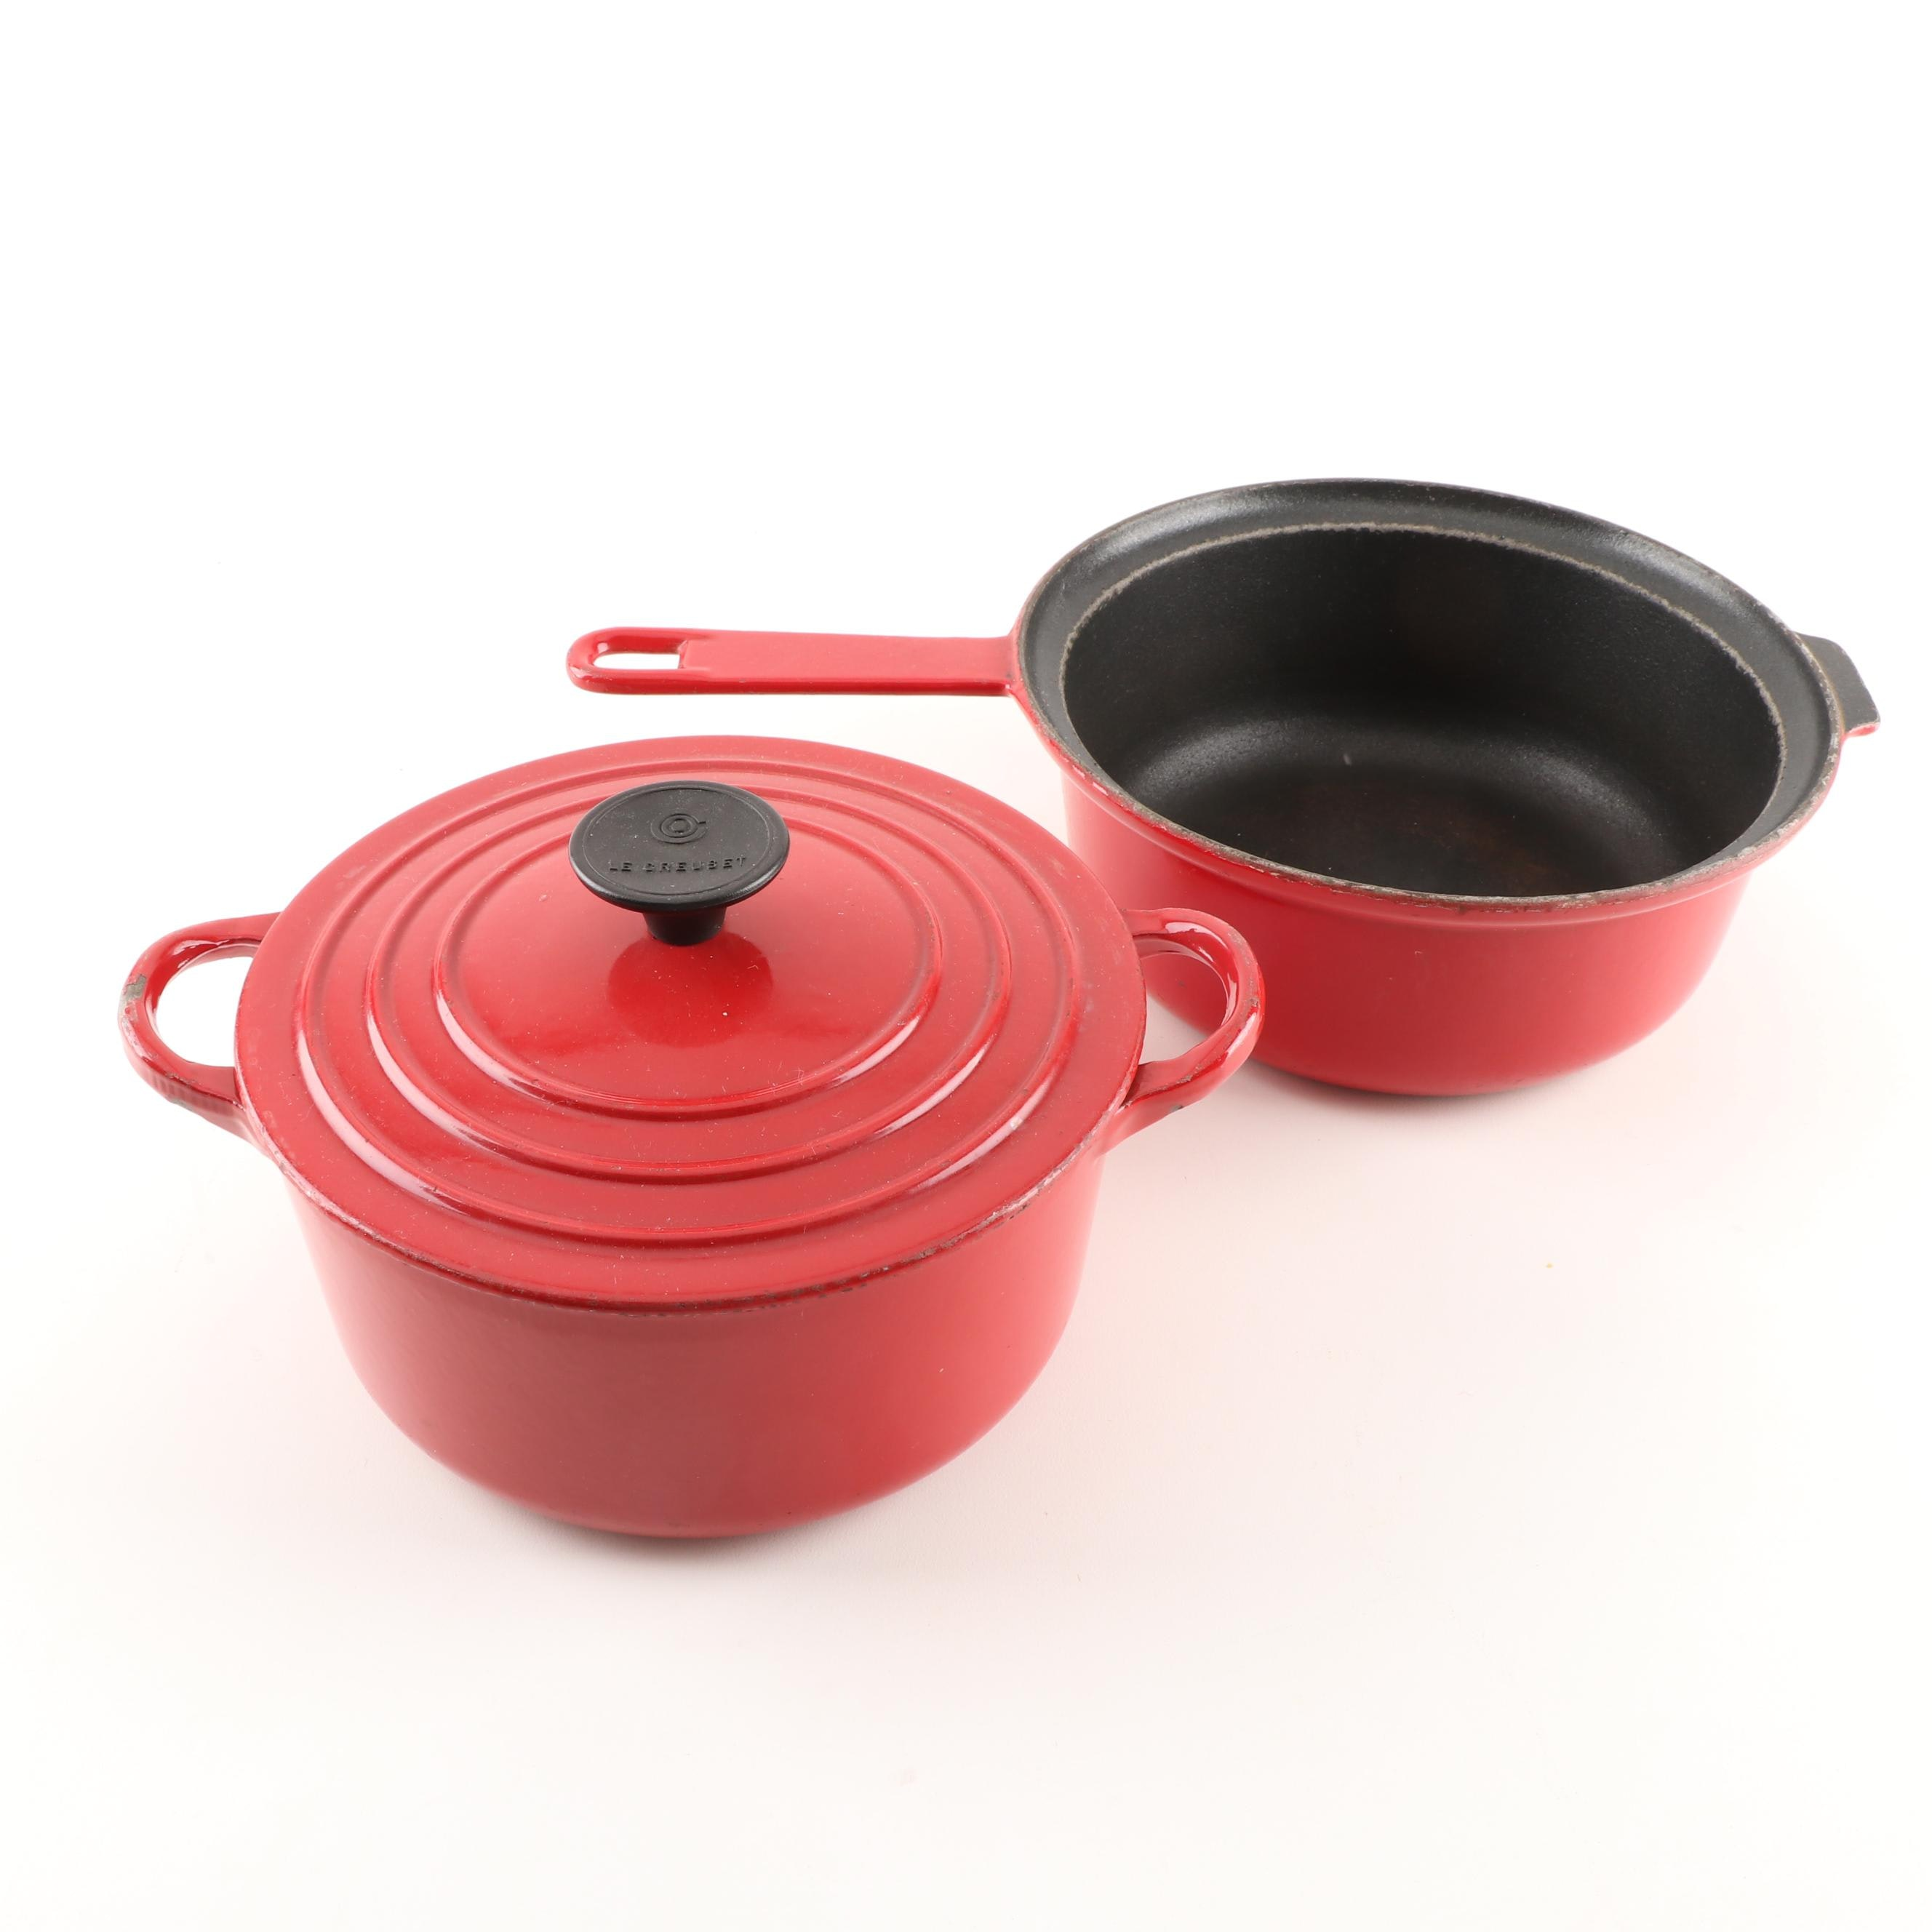 Le Creuset Red Enameled Cast Iron Sauté Pan and Dutch Oven with Lid